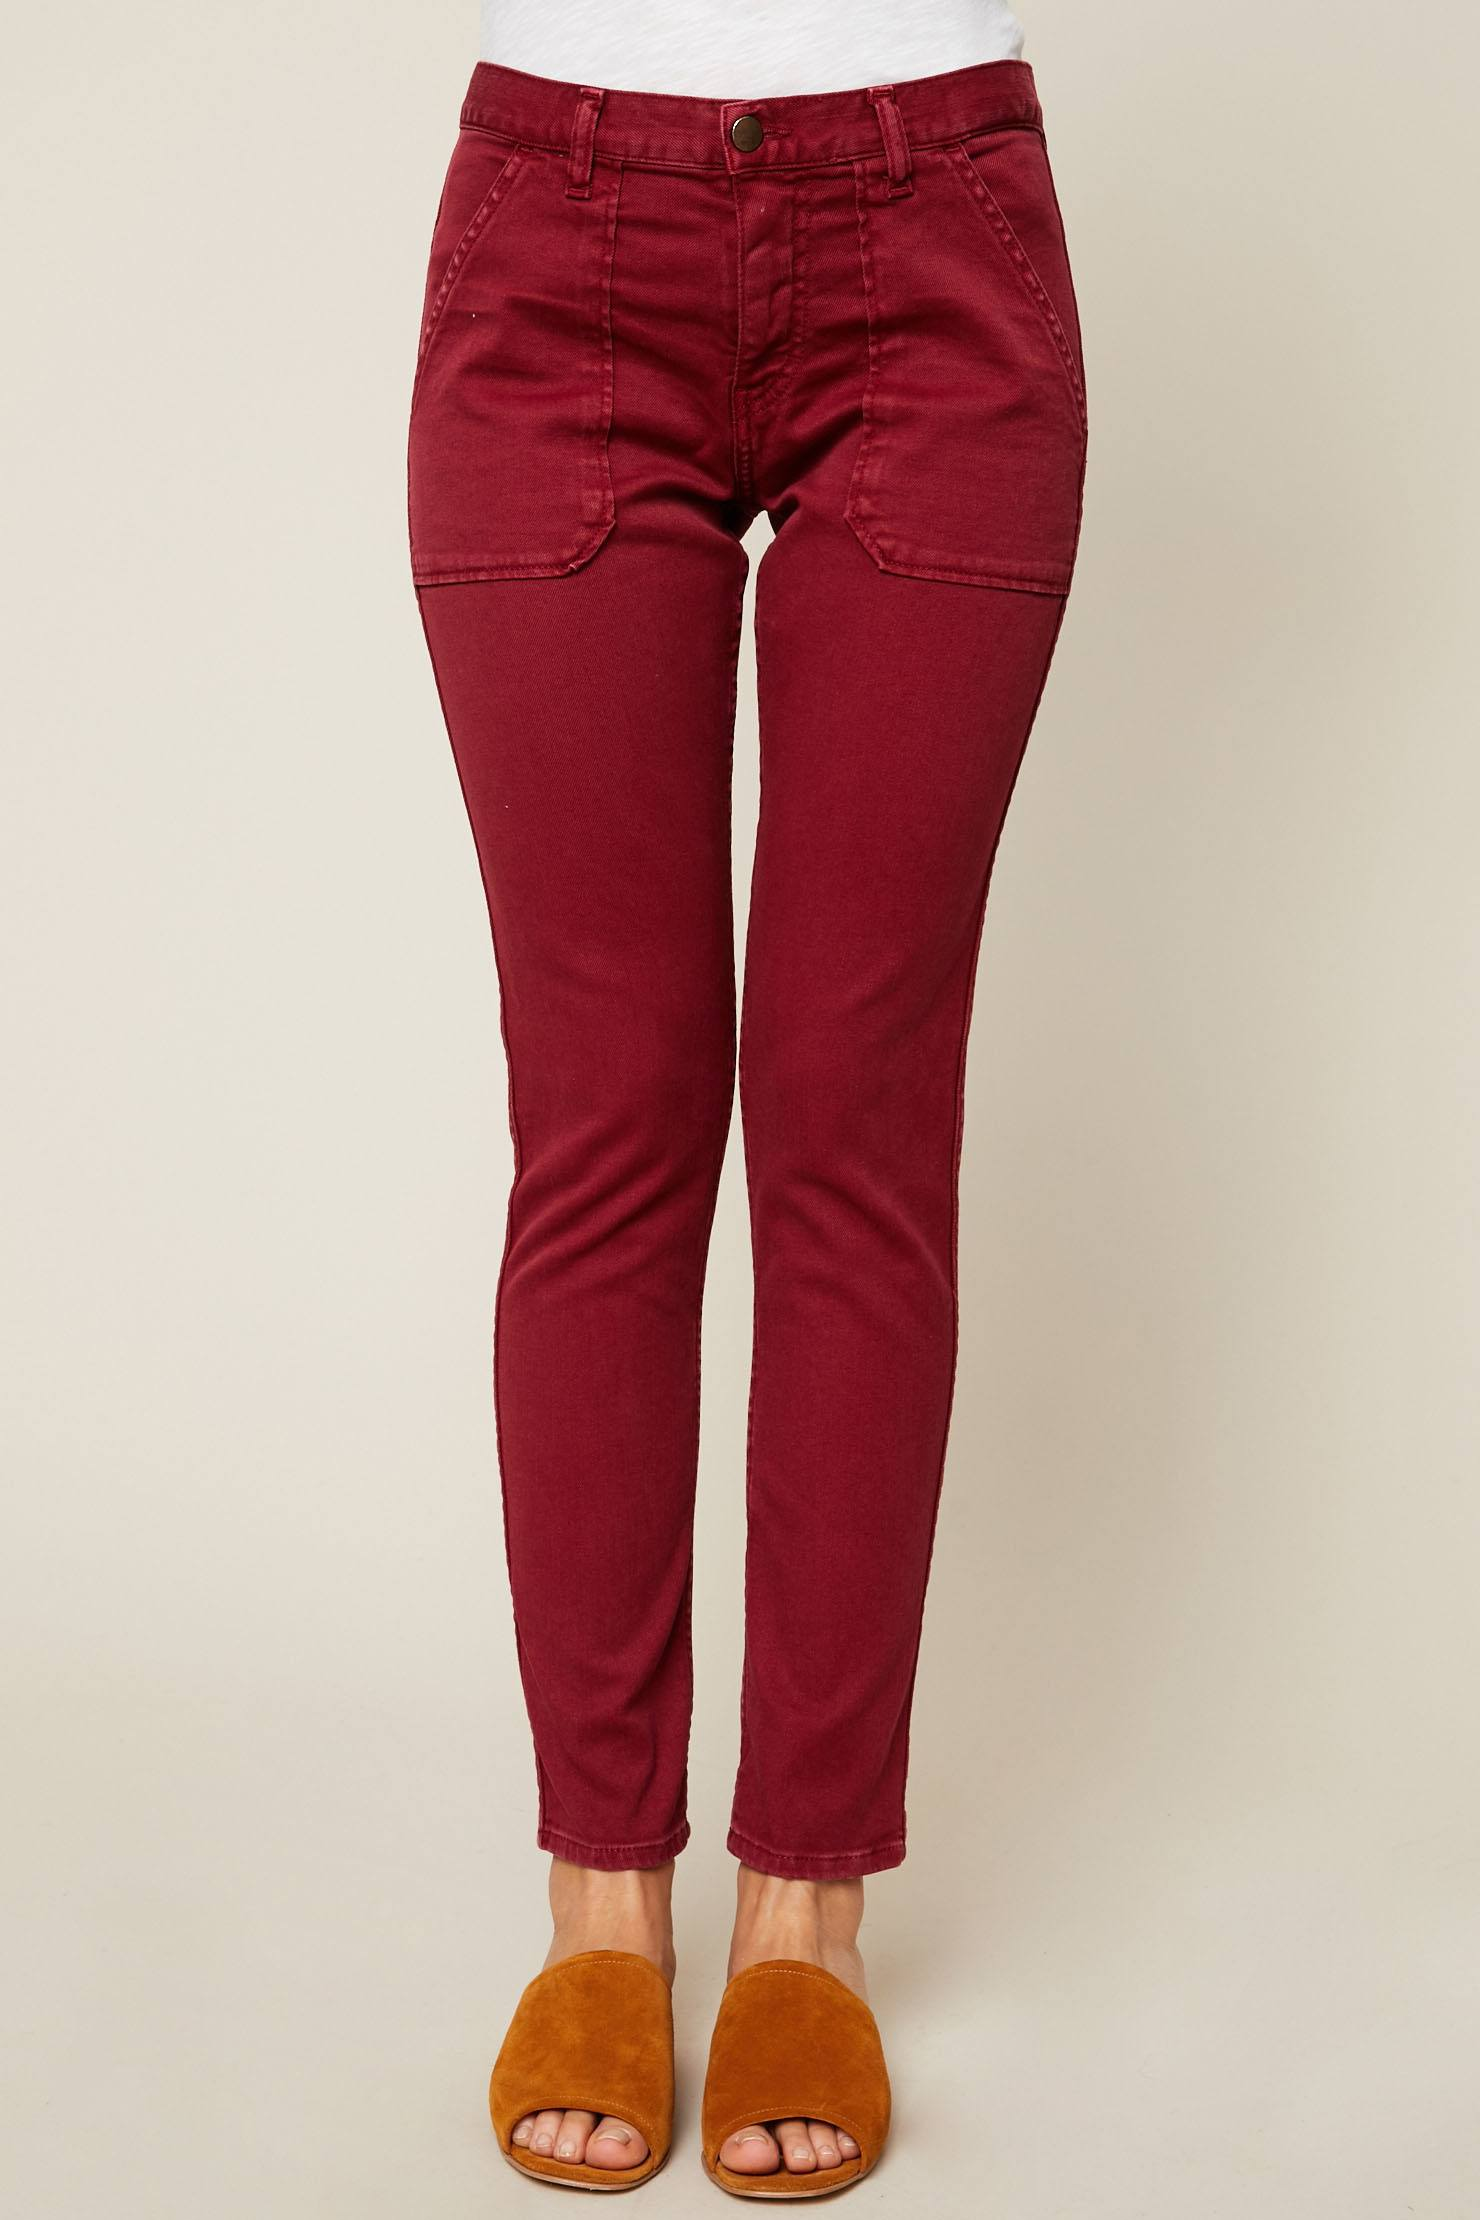 Ba&sh Csally Jean slim bordeaux - Monshowroom